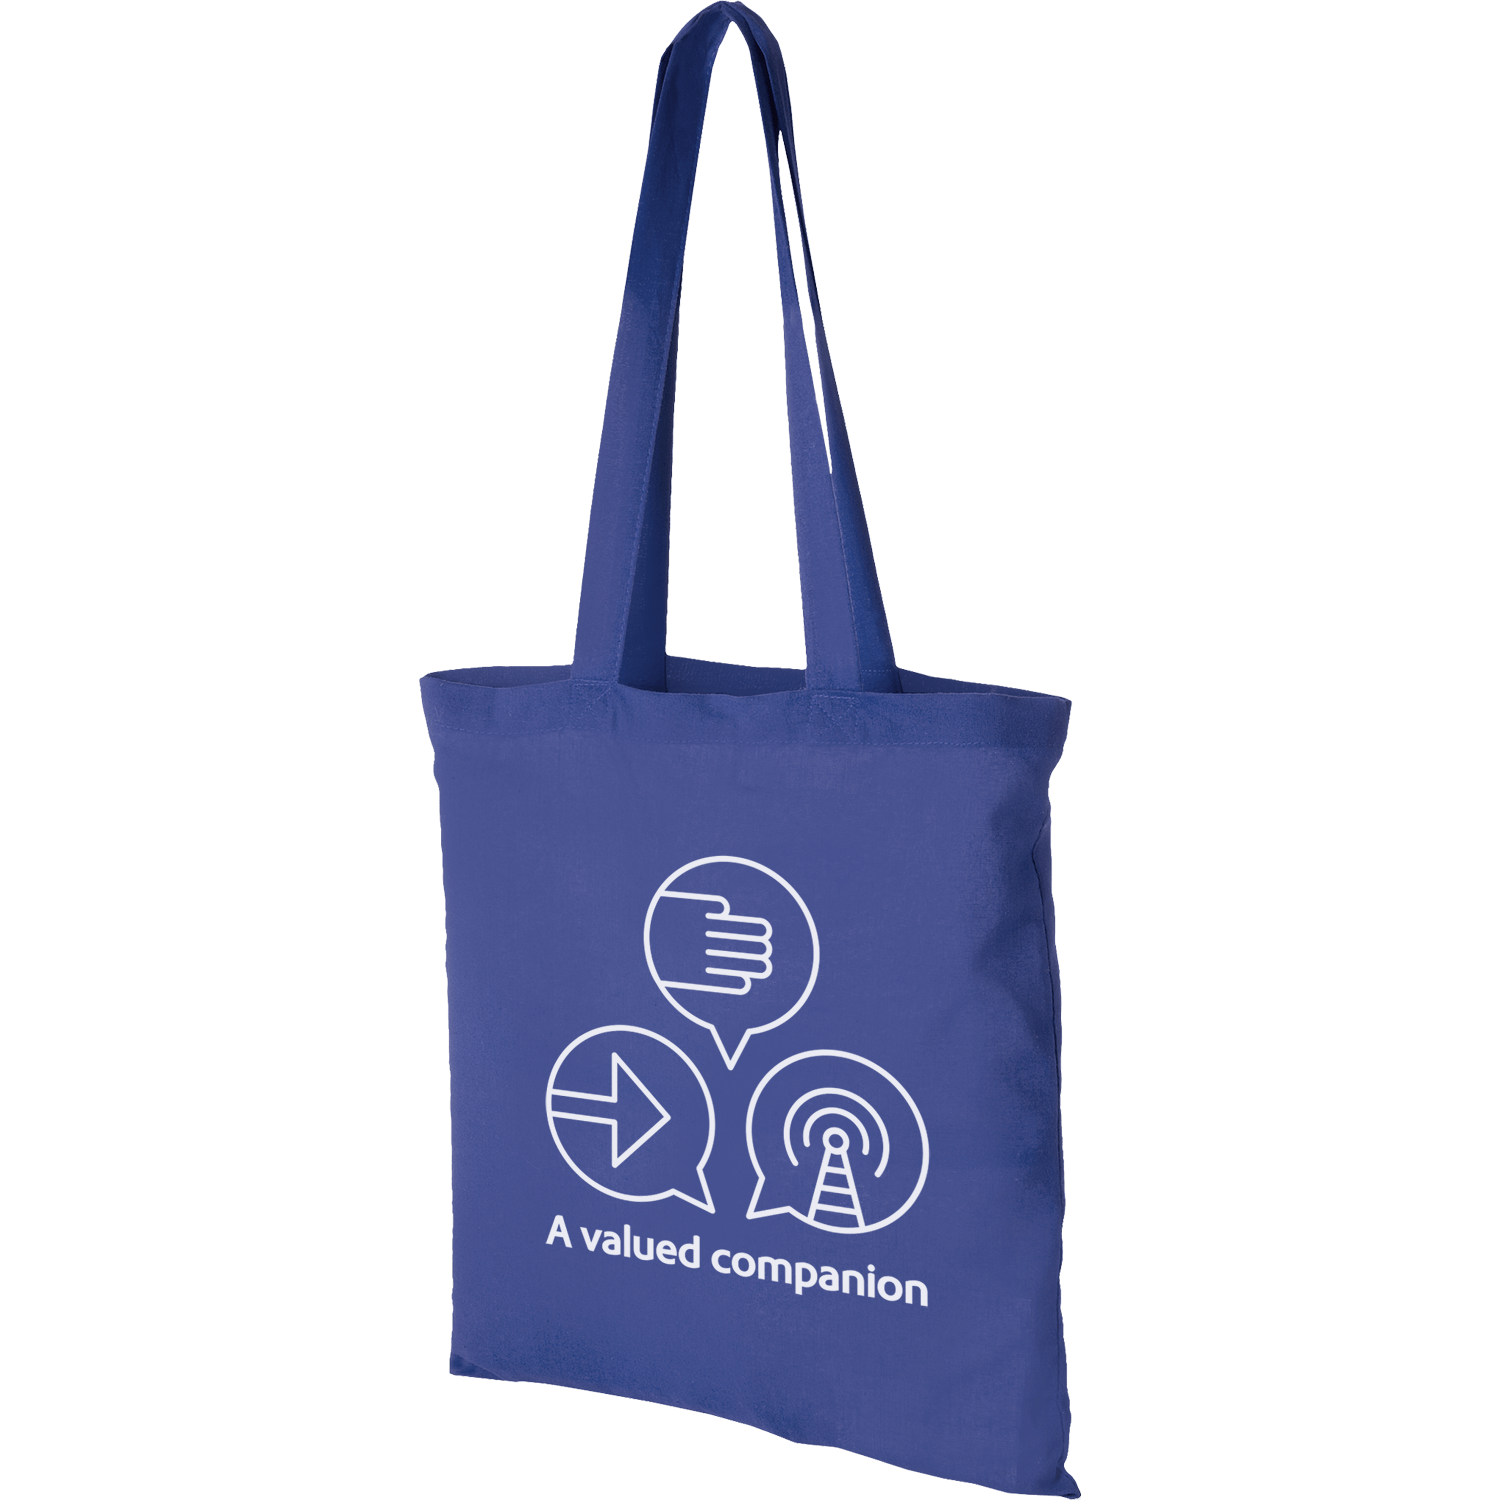 100% Cotton Tote 5oz